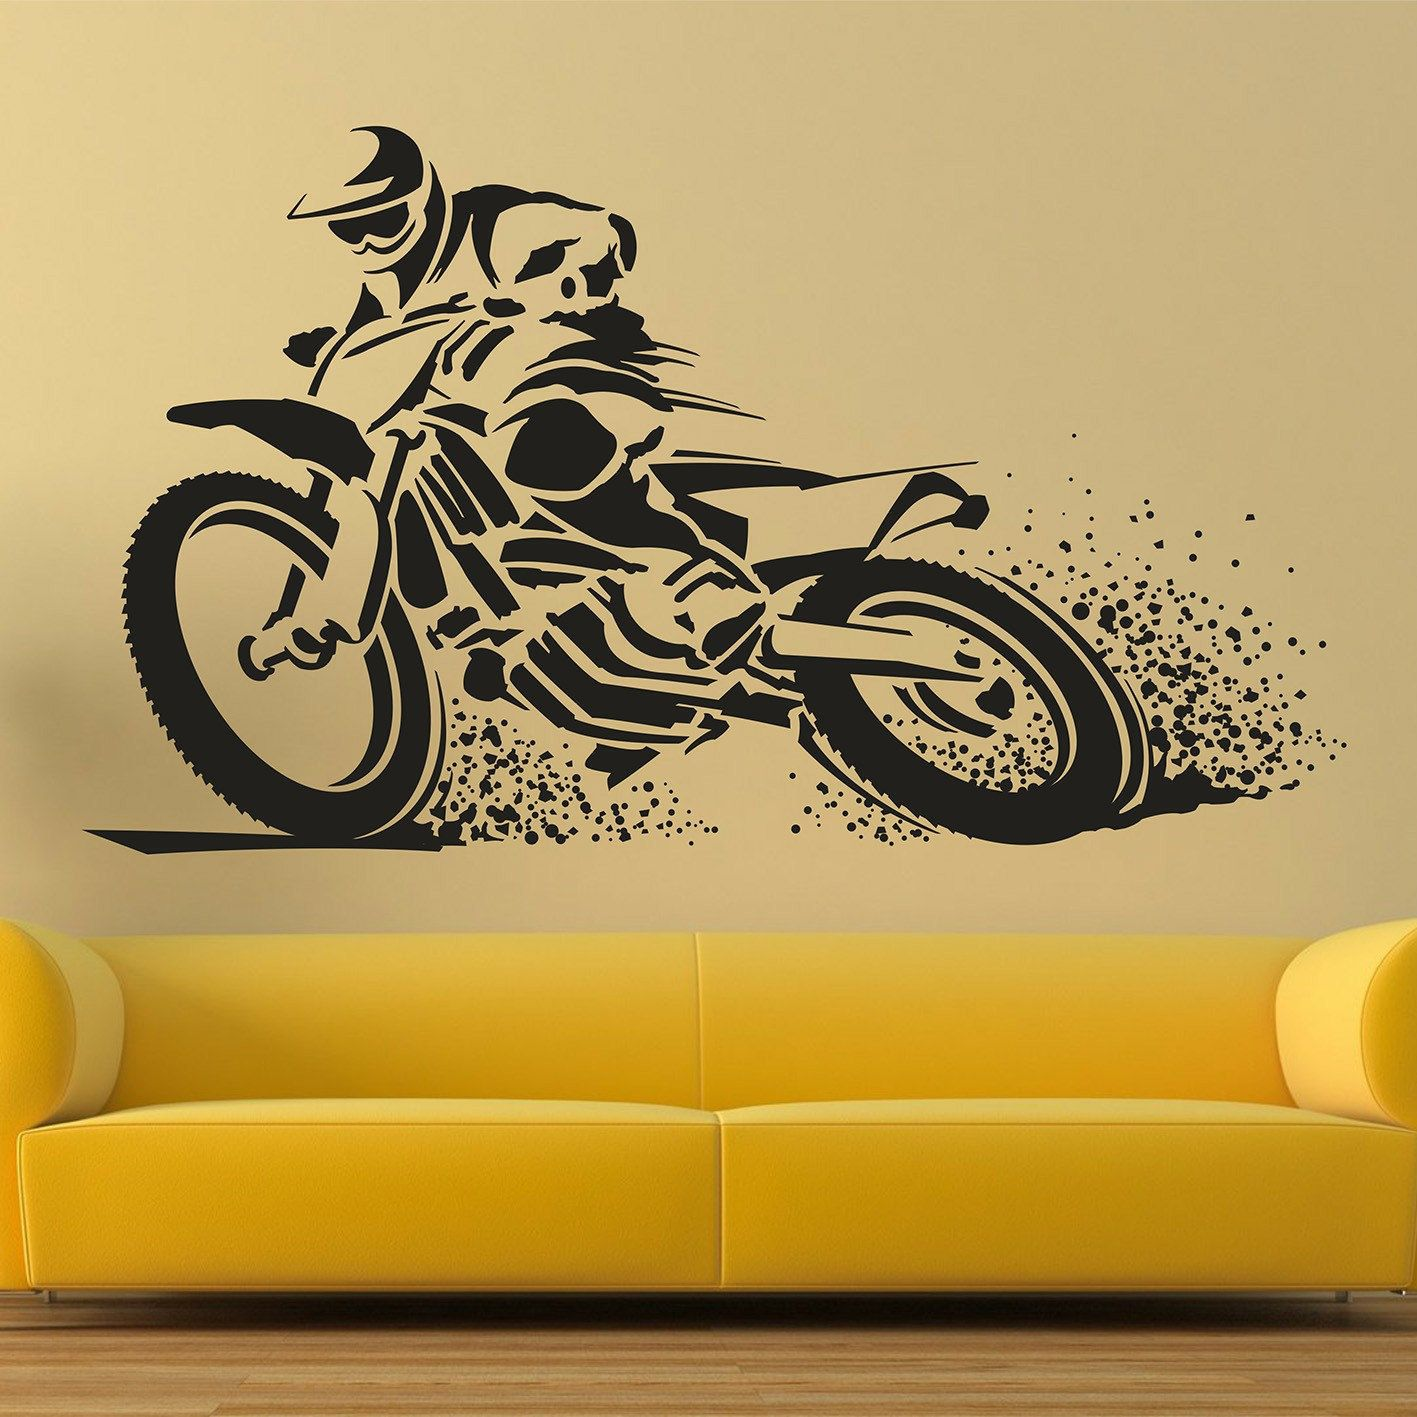 Motocross wall decal, Extreme sports vinyl stickers, Motocycle wall ...